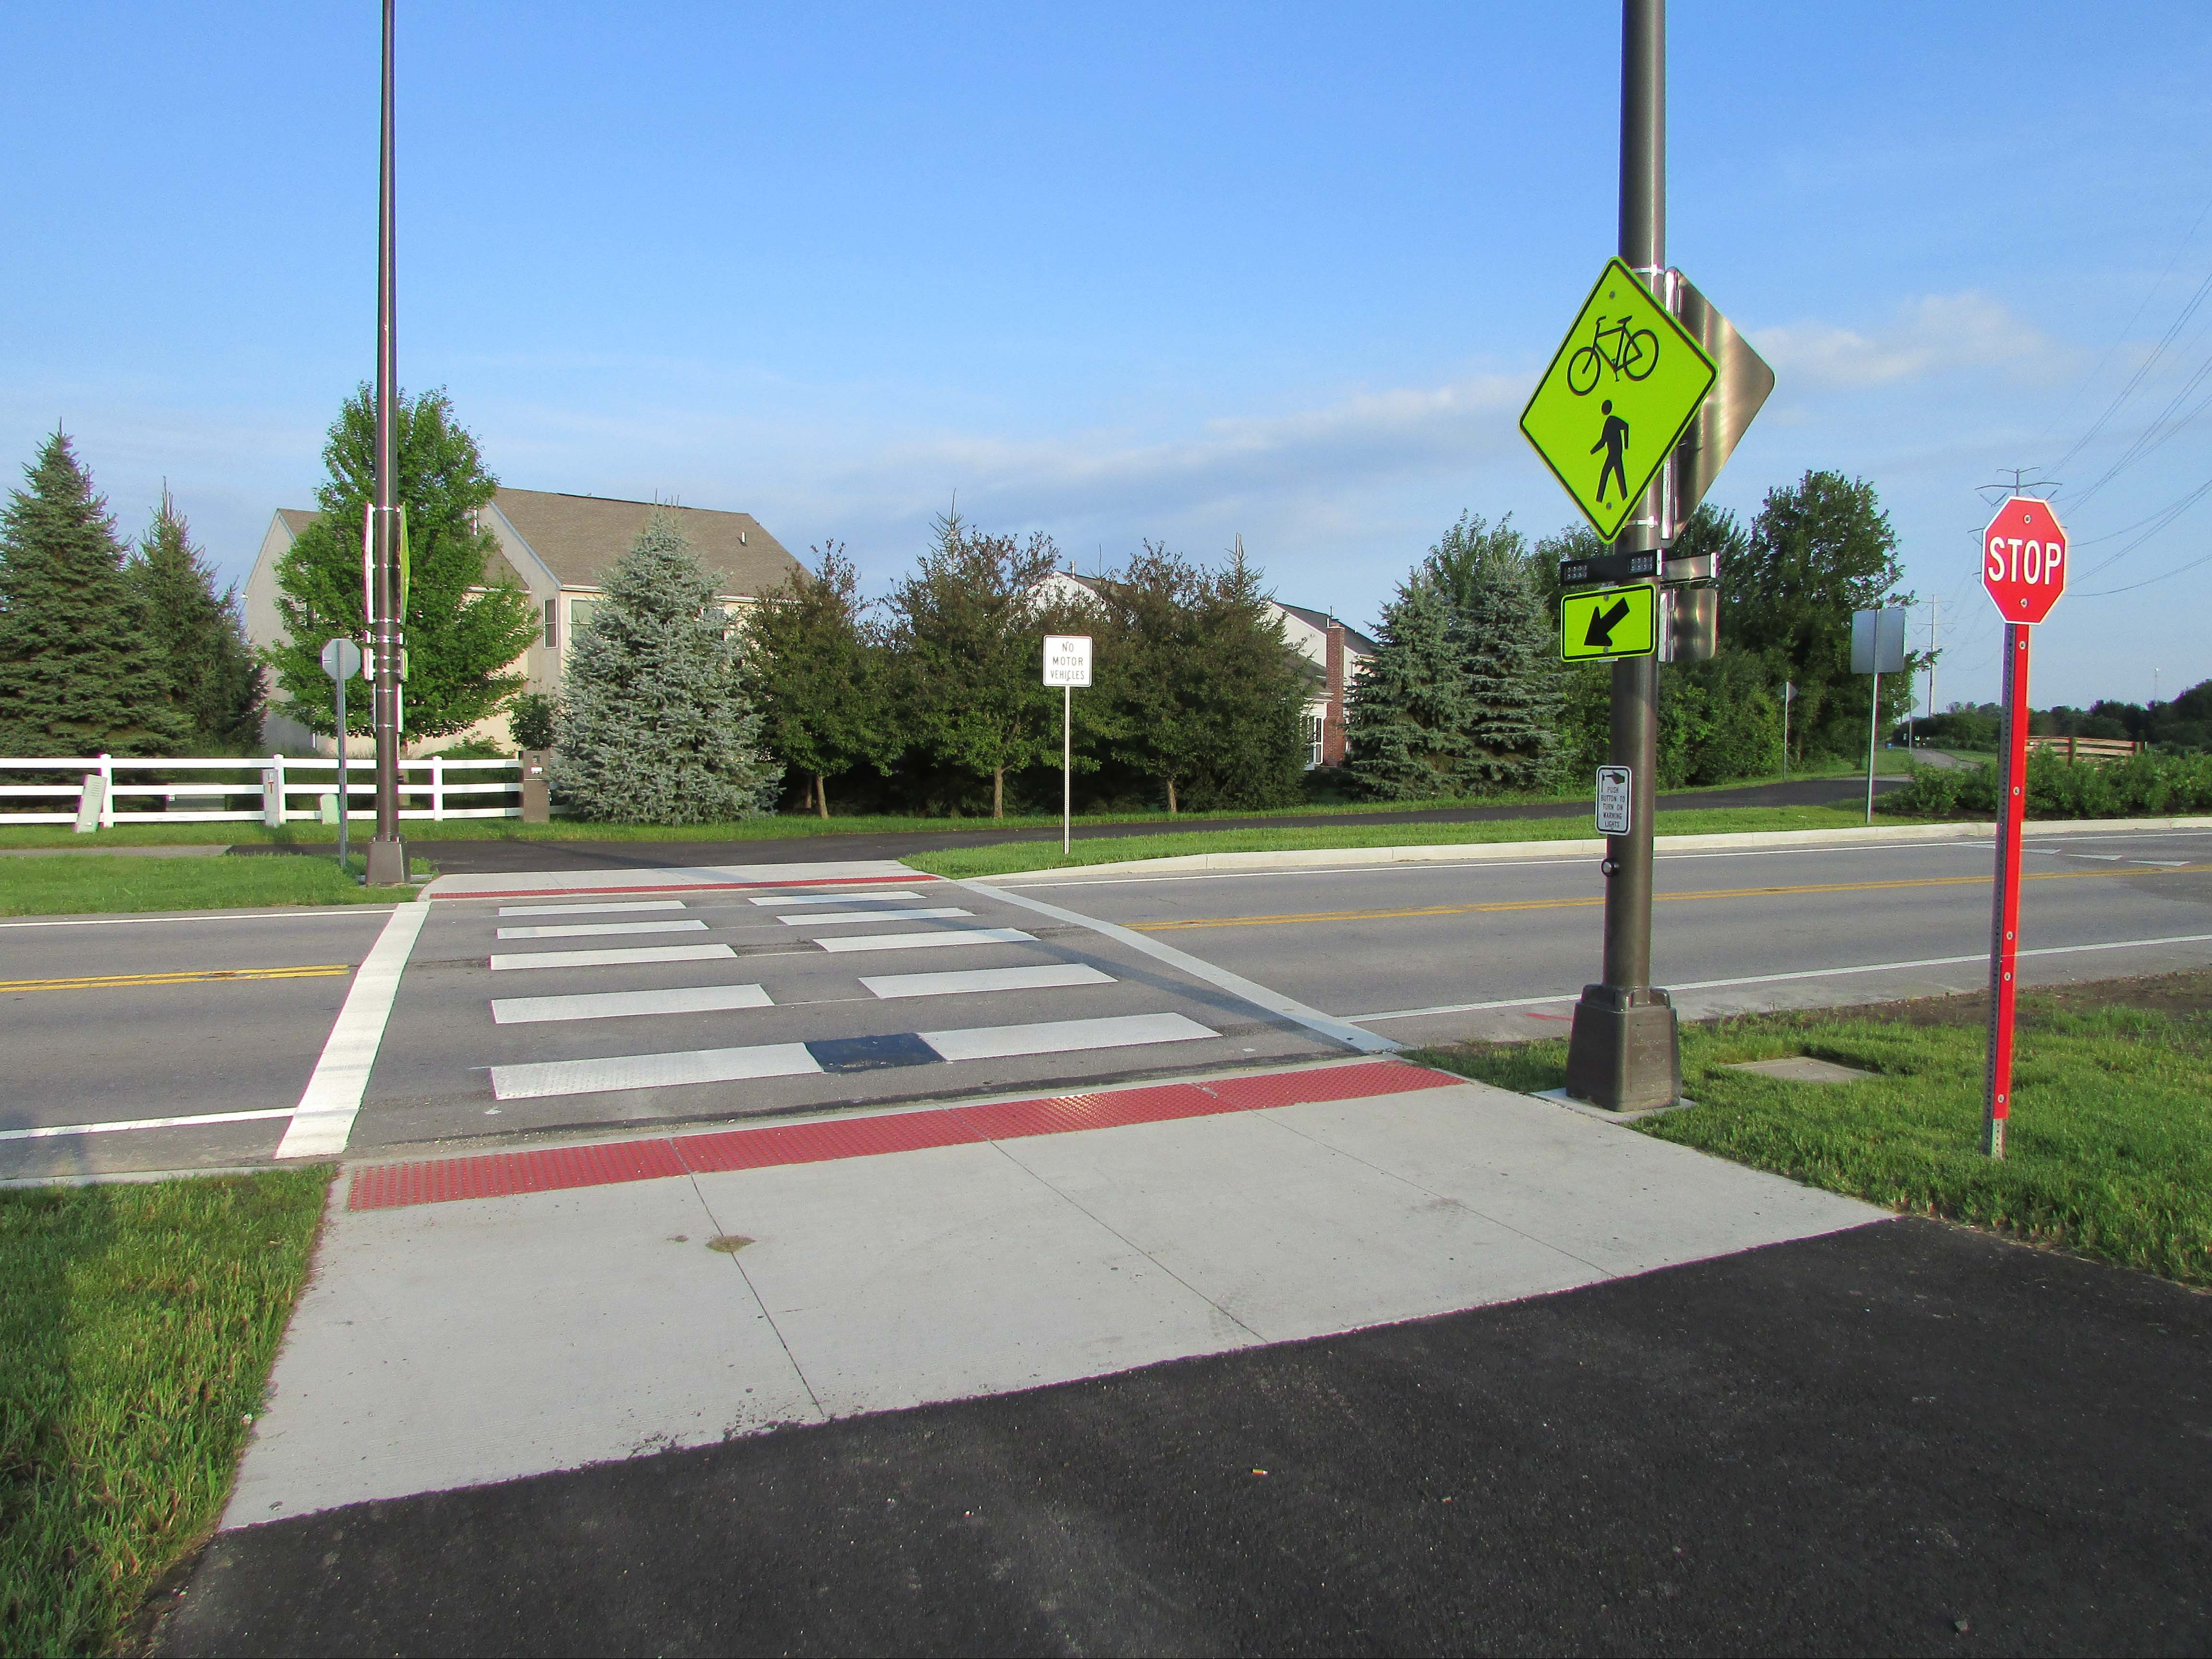 Lesson Learned from the Pandemic: Communities Need Safe & Accessible Pedestrian and Bicycle Facilities